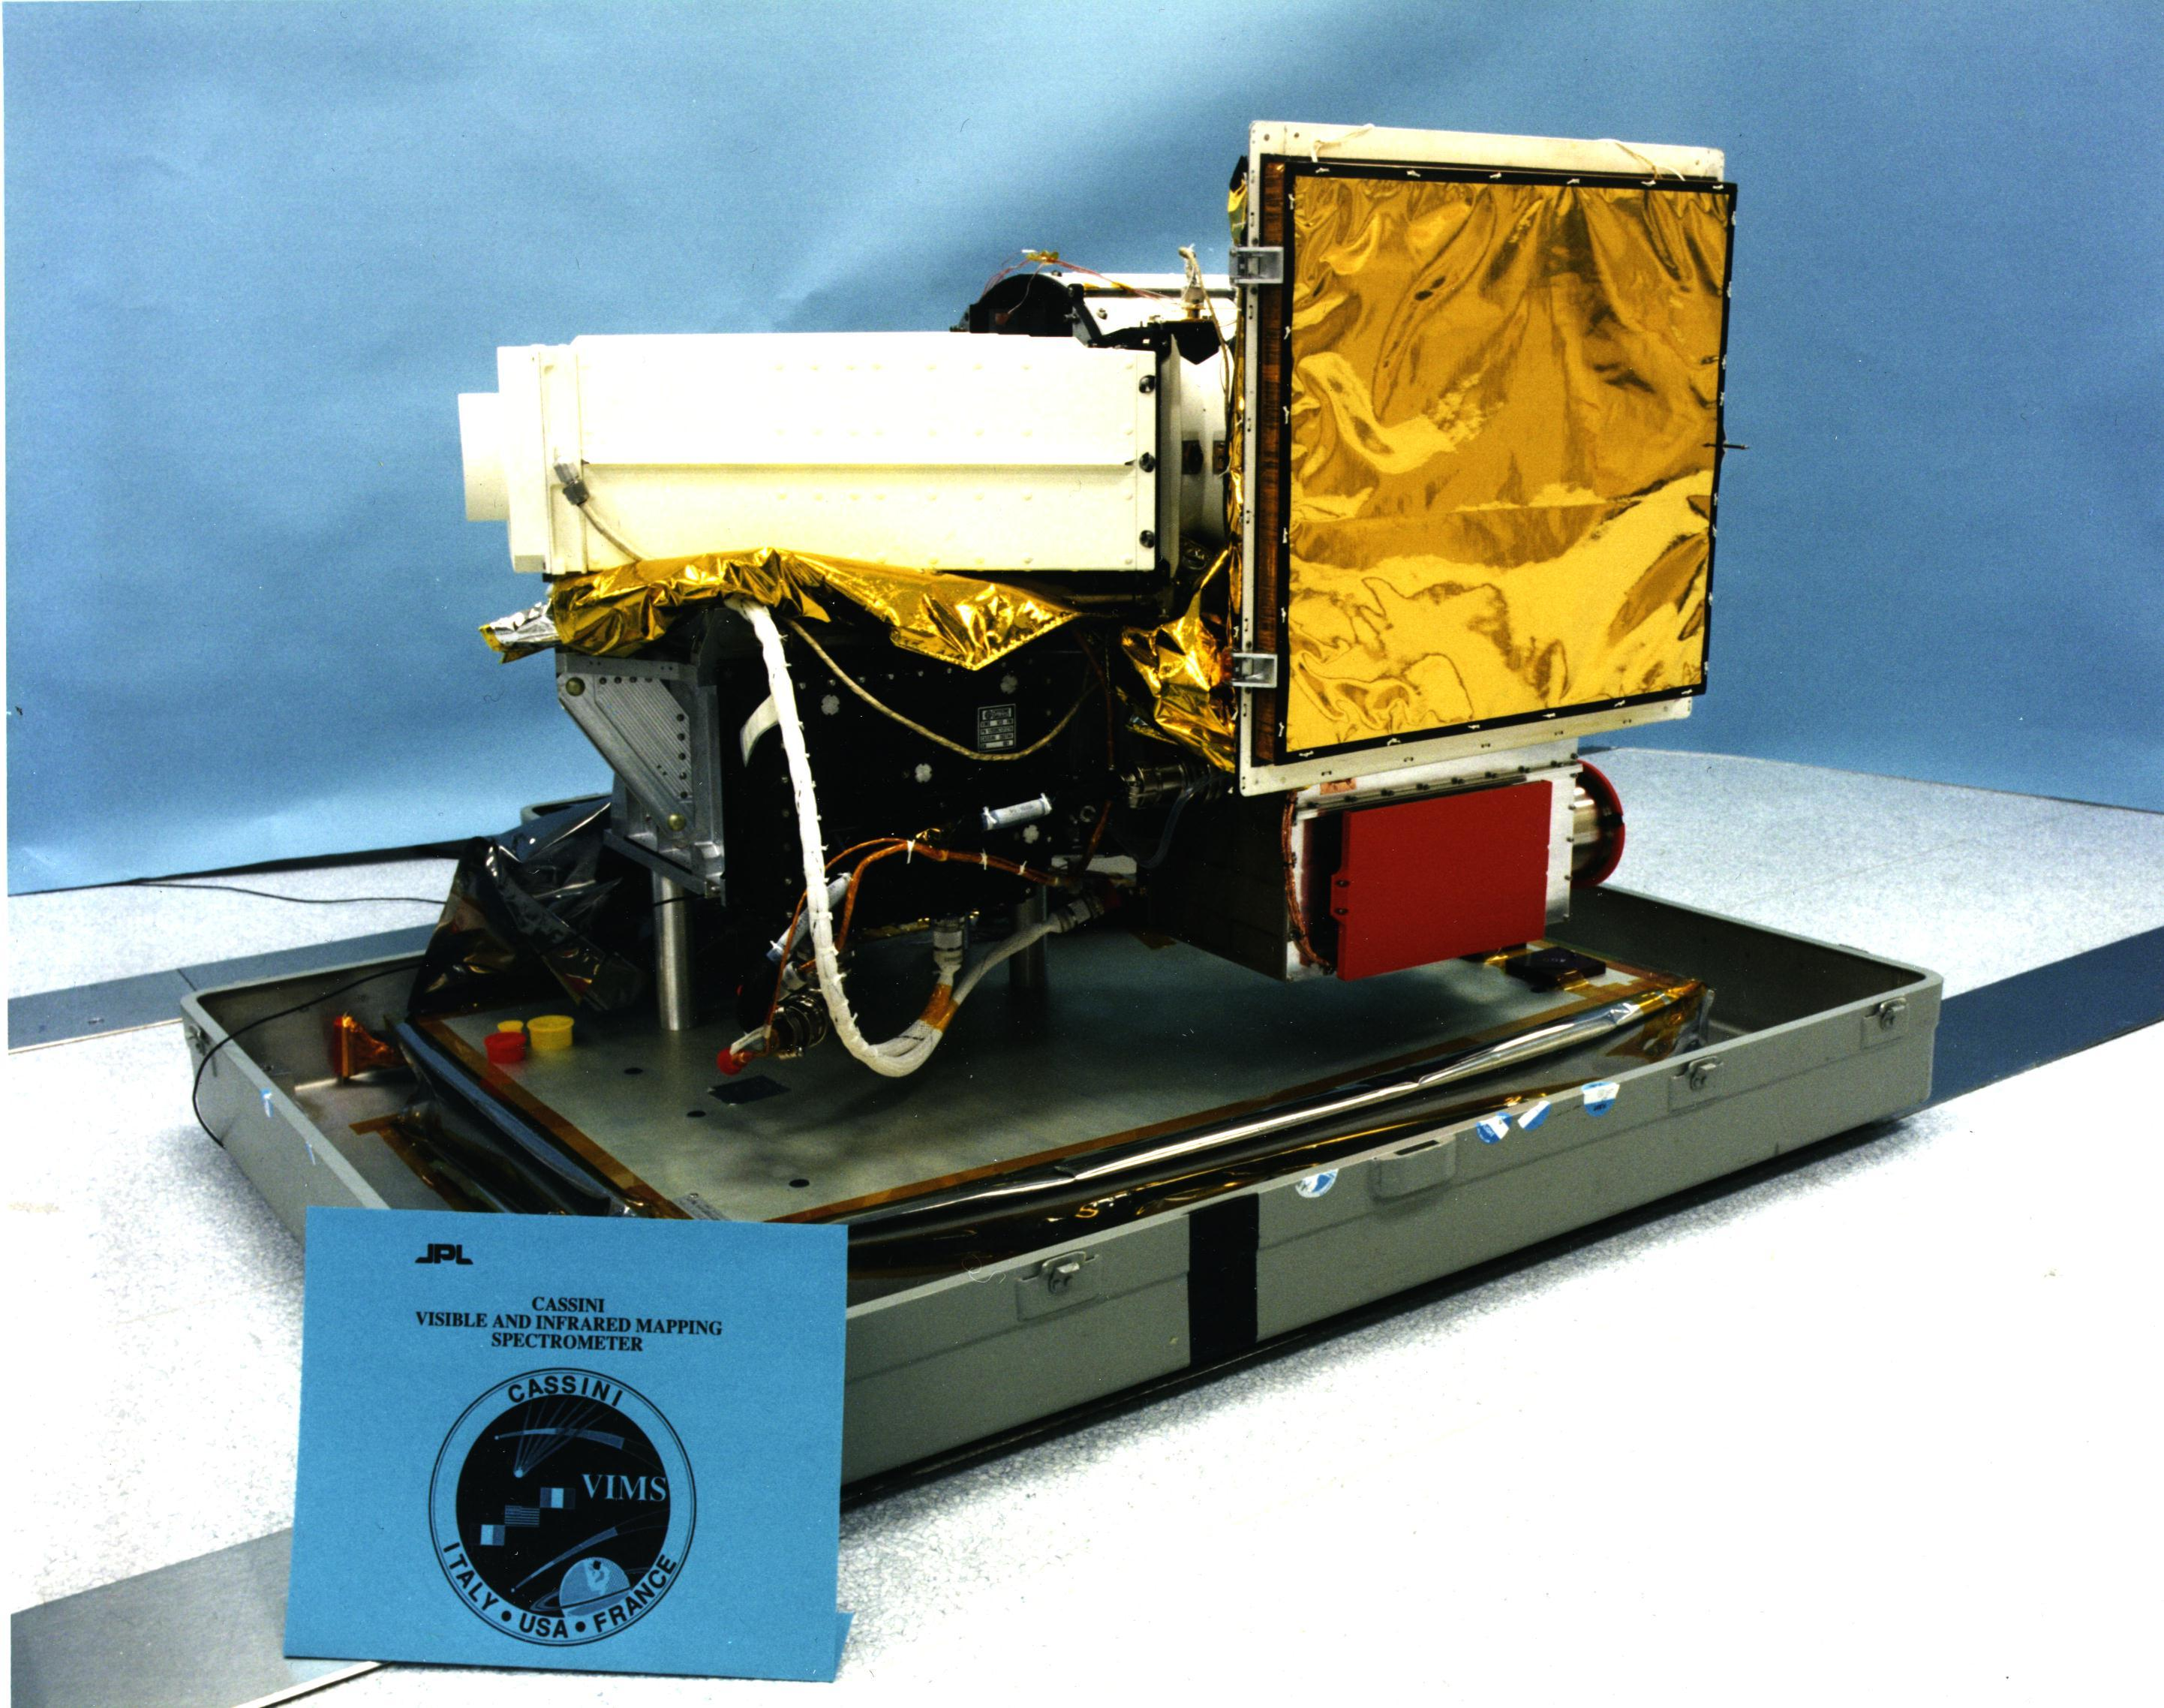 Cassini's Visual and Infrared Mapping Spectrometer